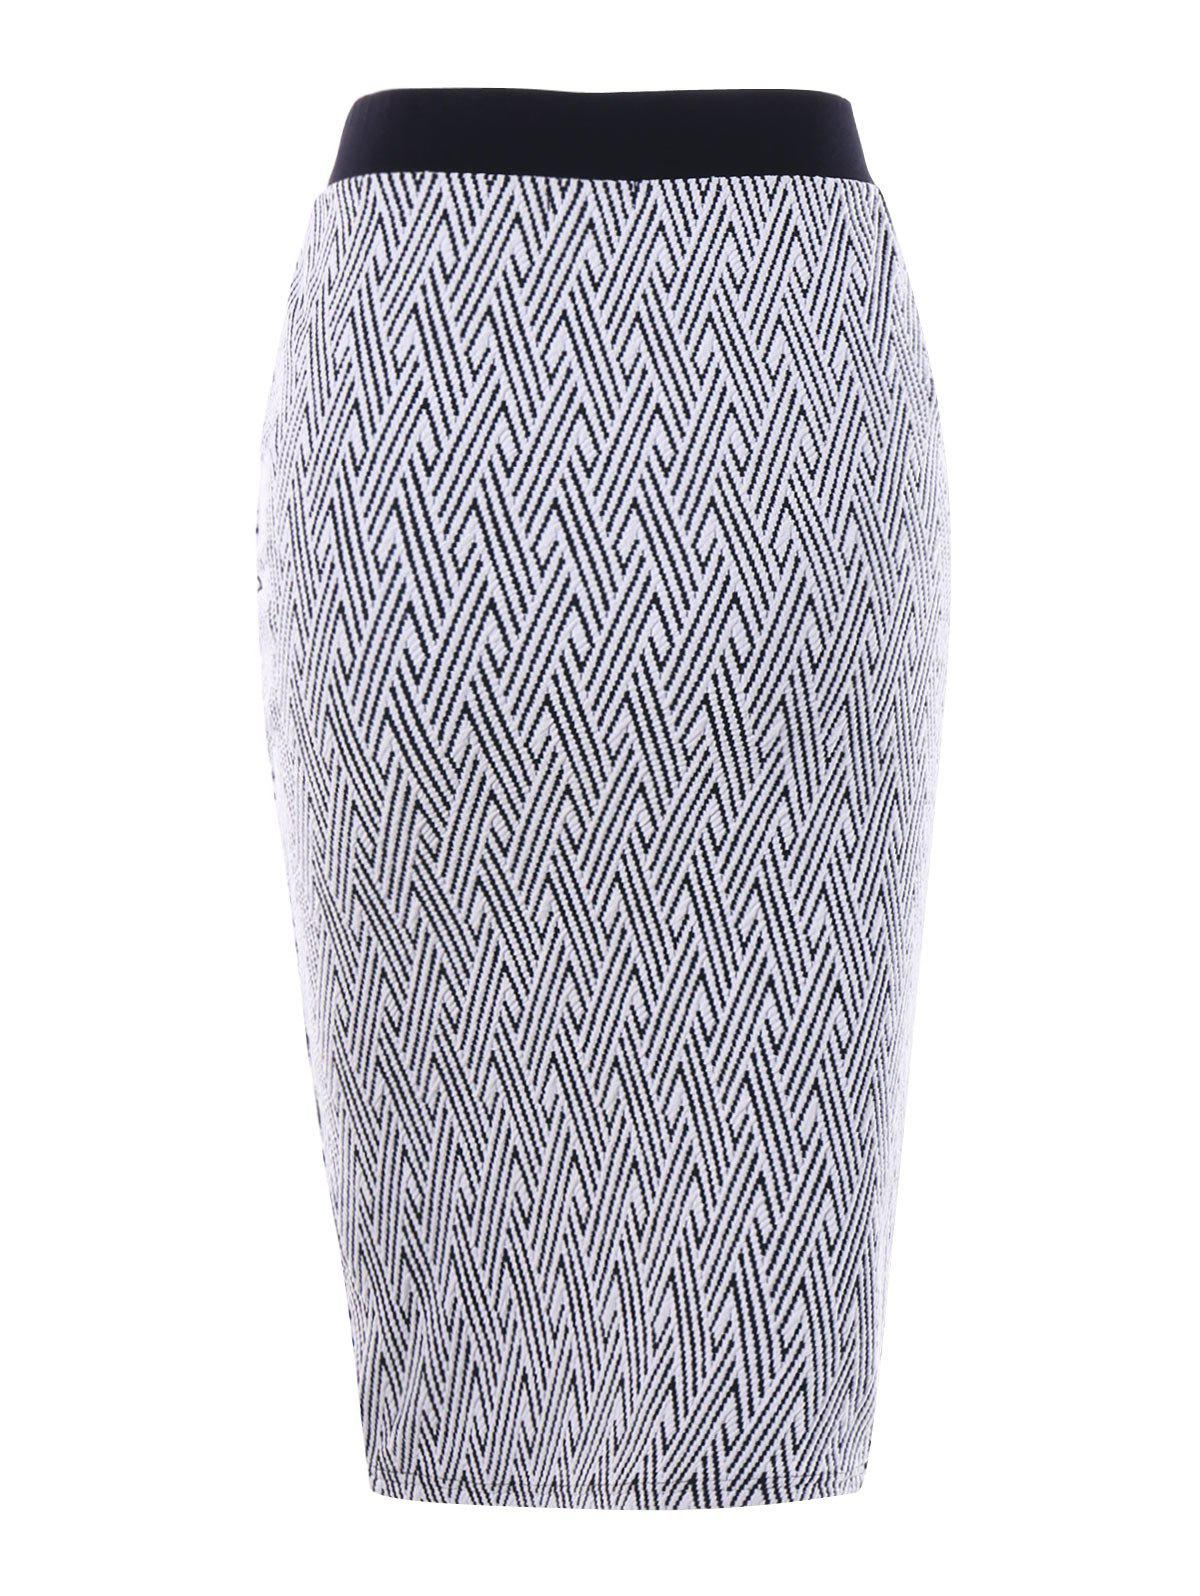 Monochrome Zip Front Pencil Skirt - WHITE/BLACK L